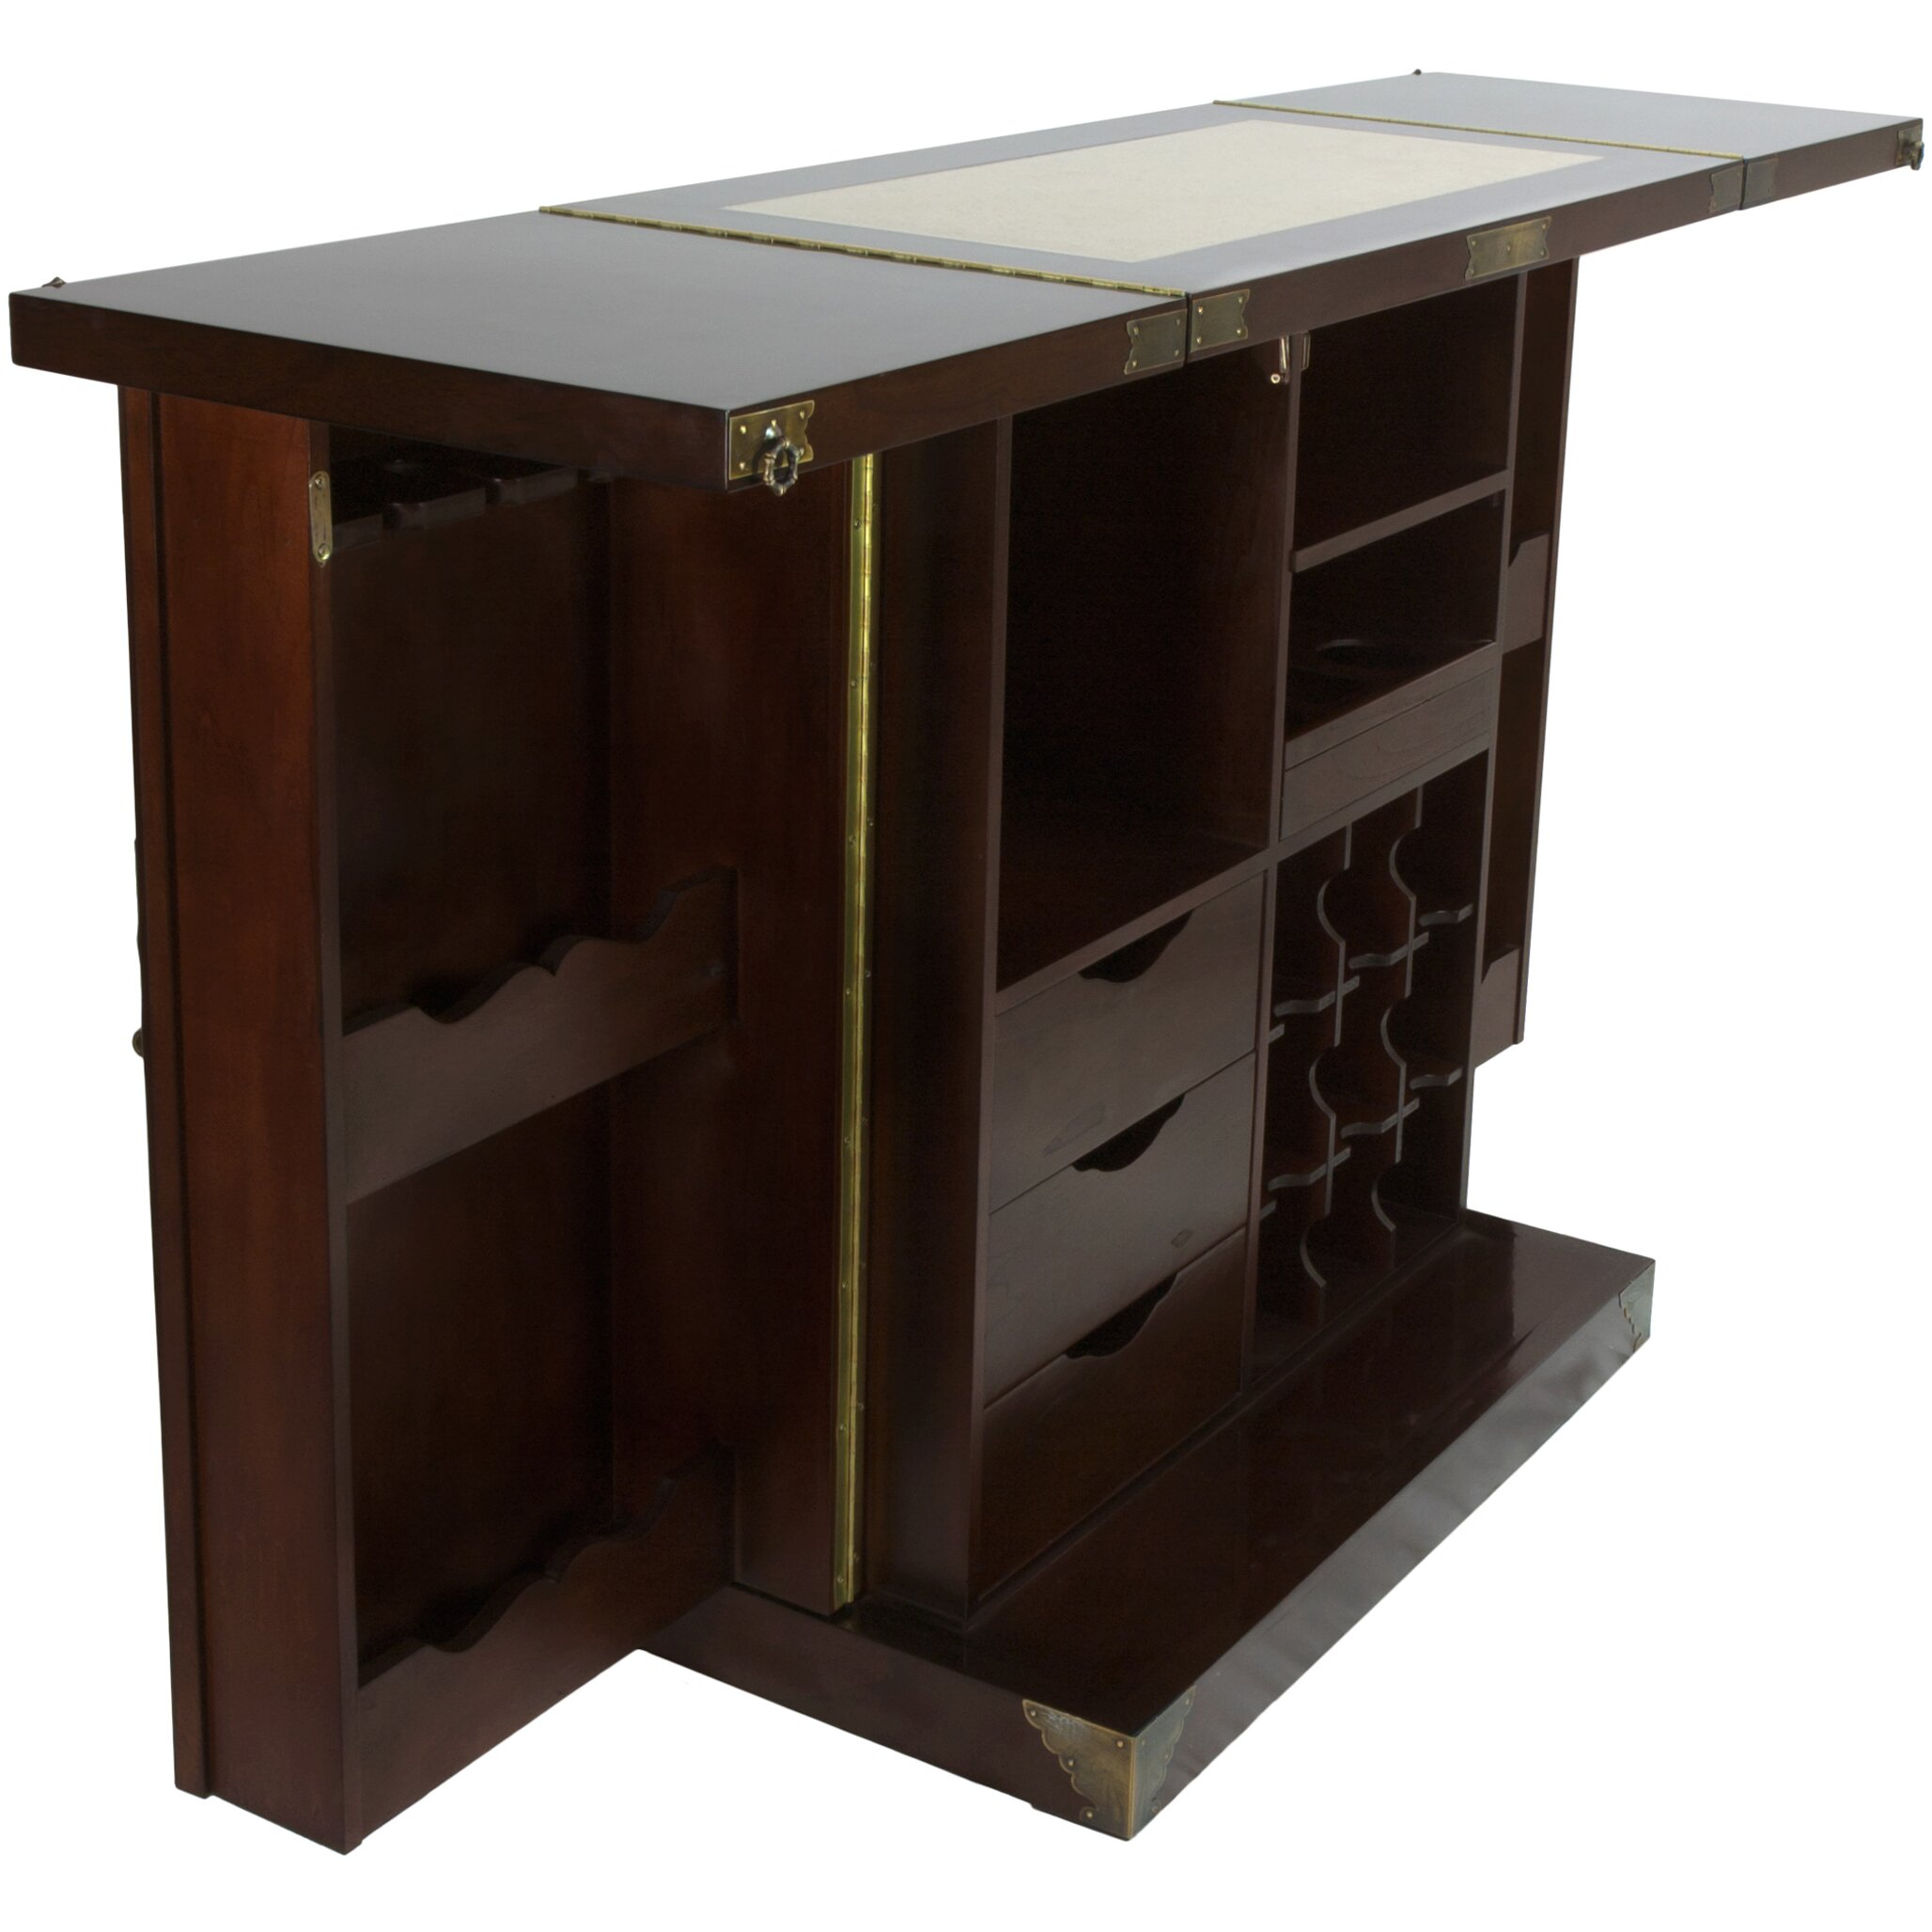 Oriental furniture korean bar cabinet with wine storage for Oriental furniture